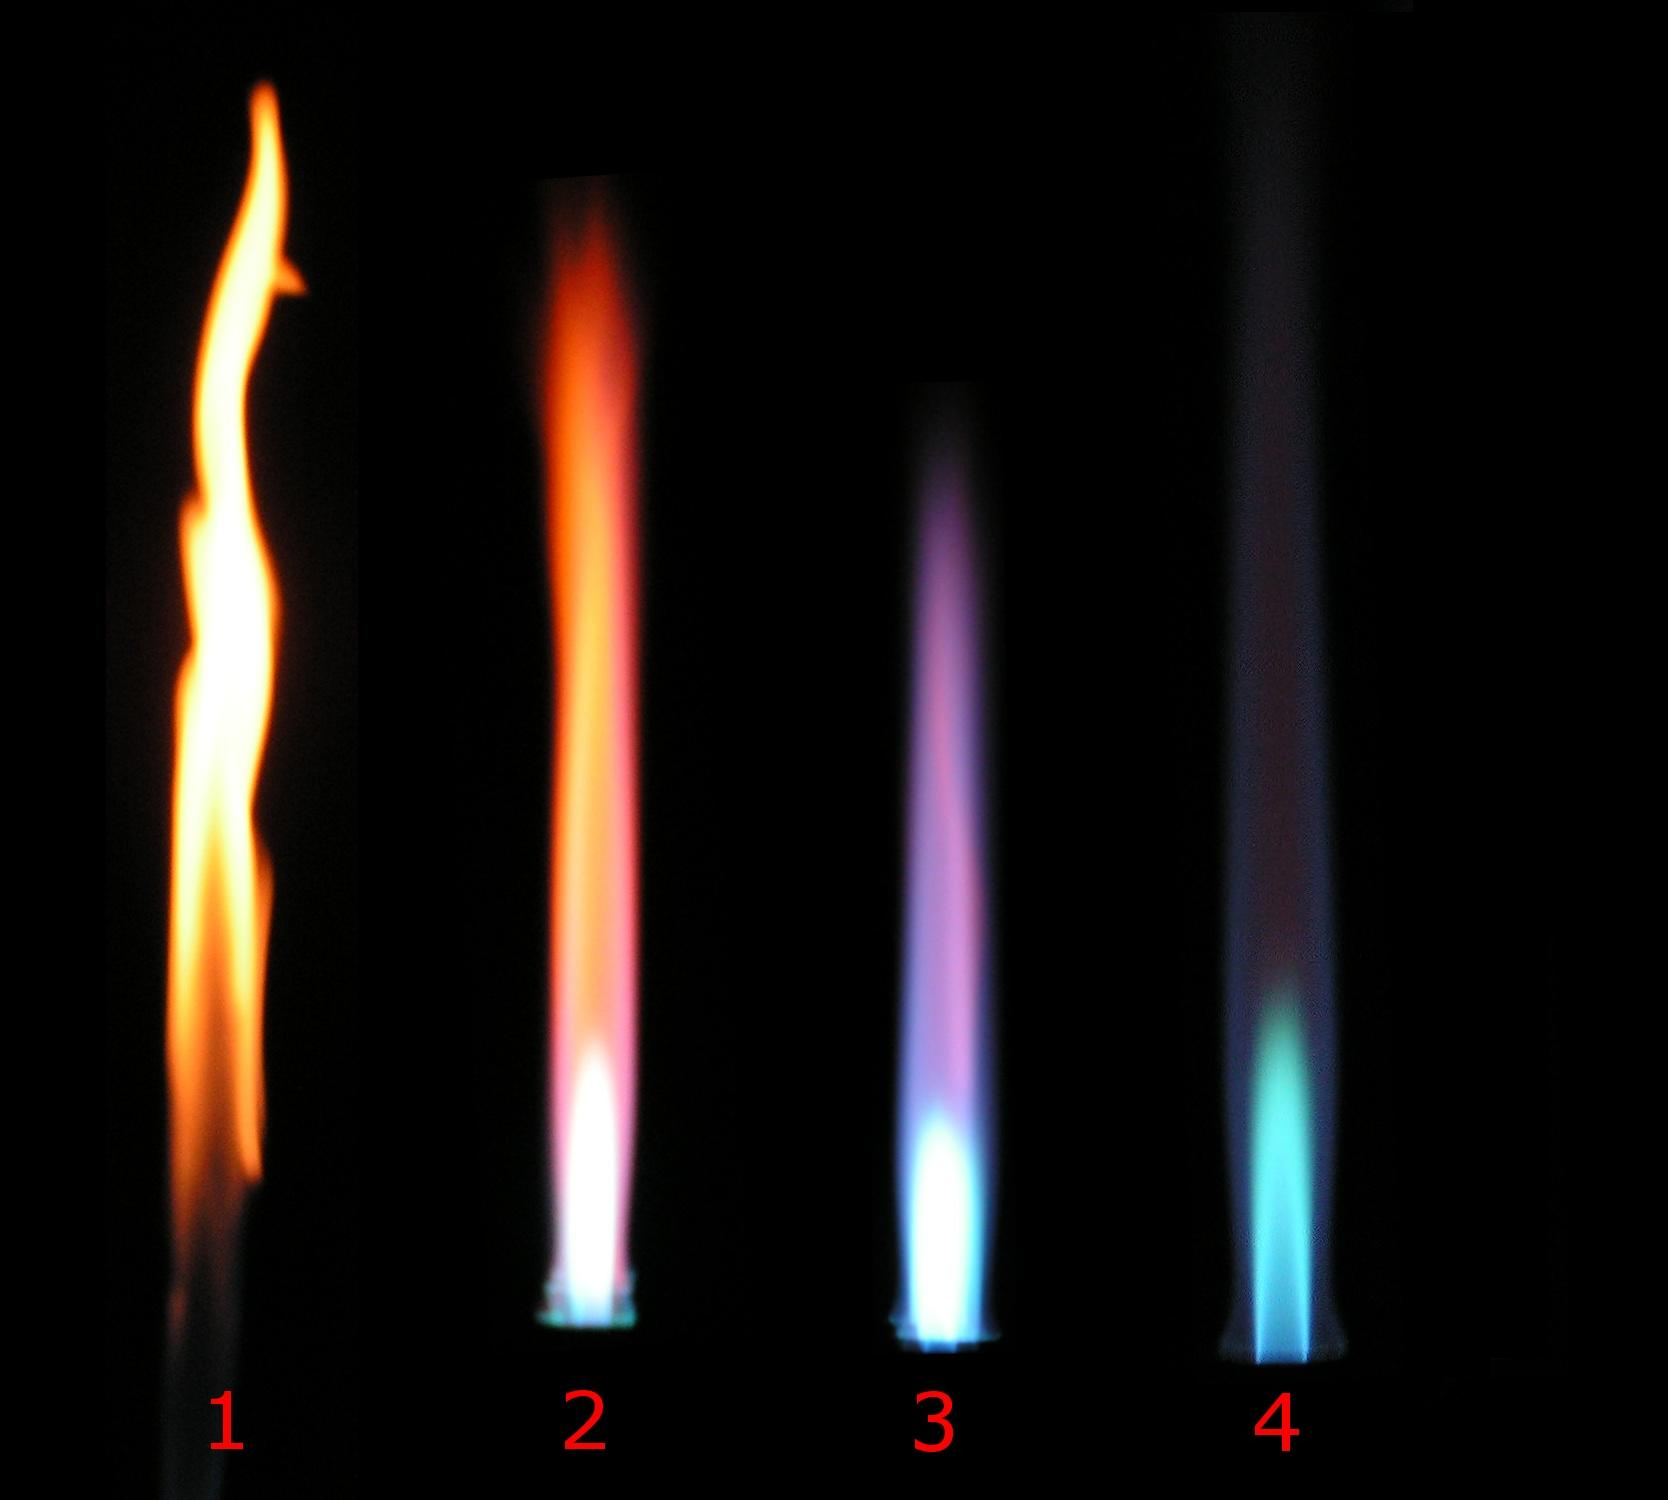 letter to a person who fears fire from the pov of a bunsen burner